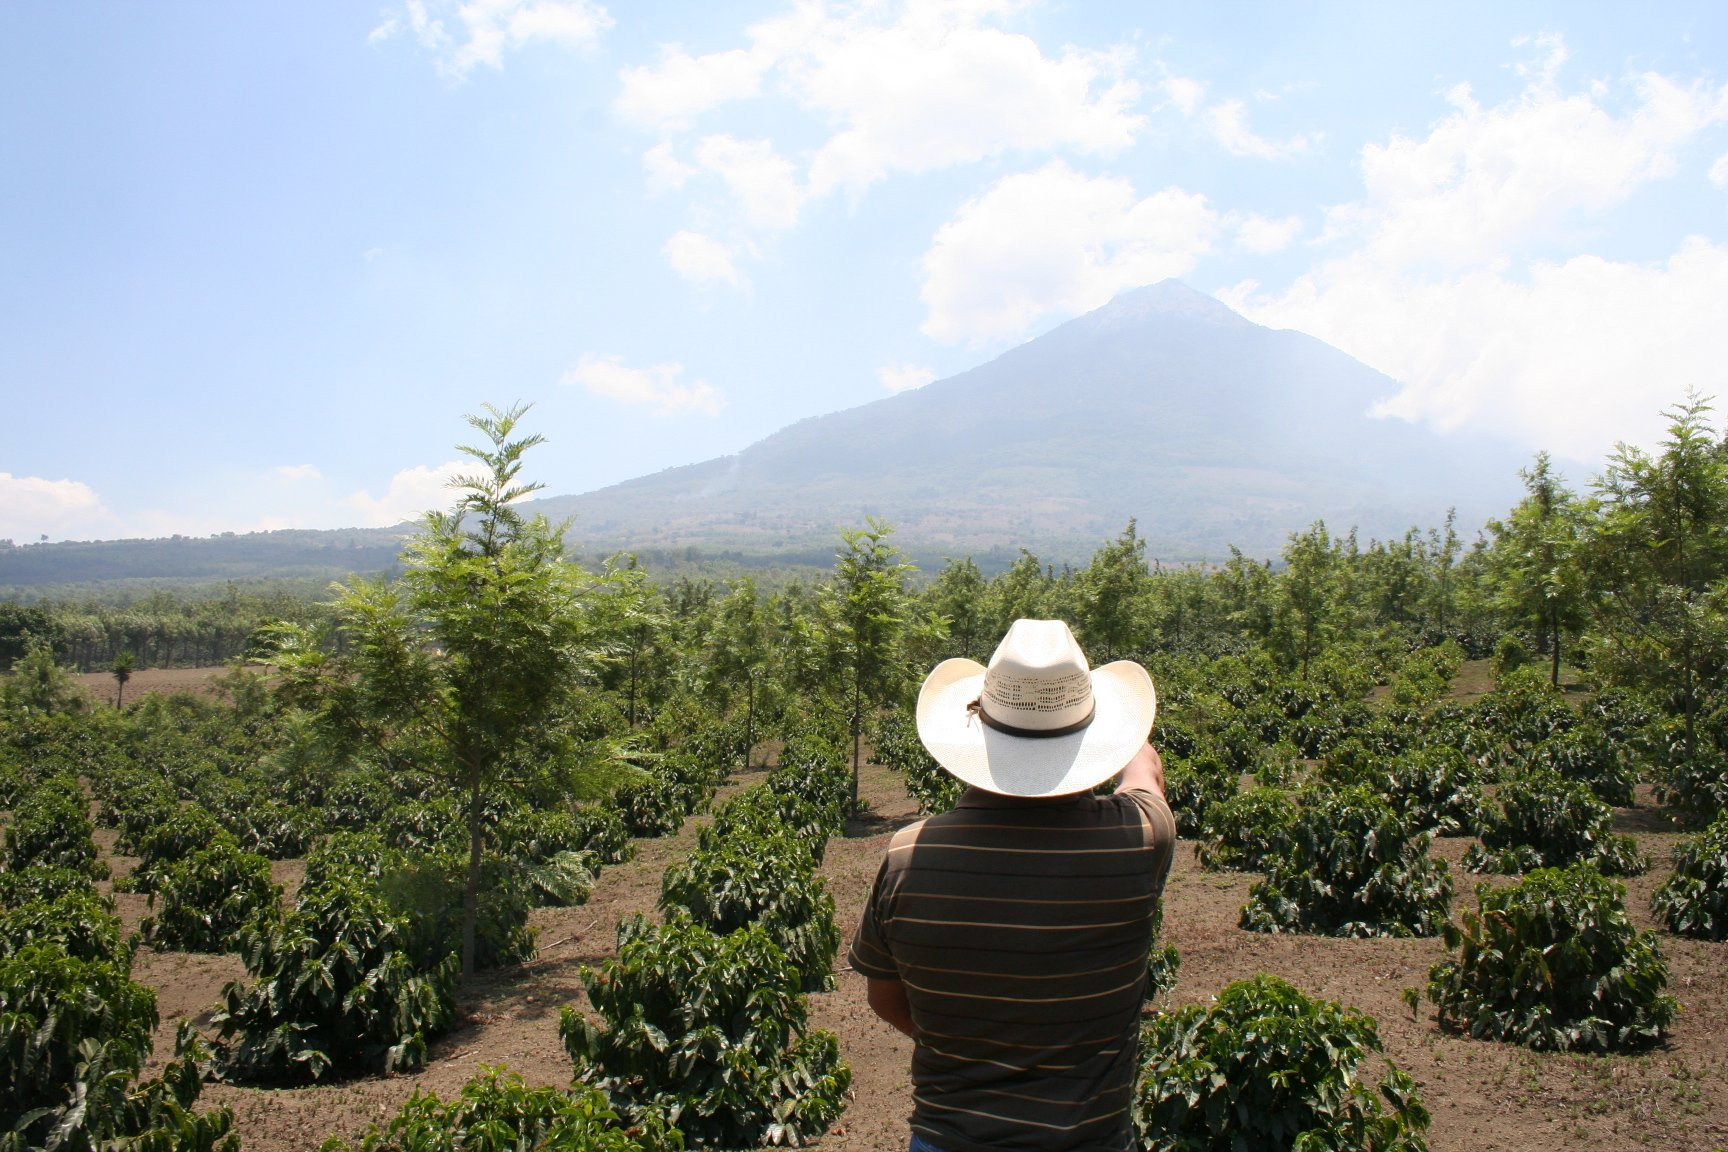 This is a coffee farm in Guatemala